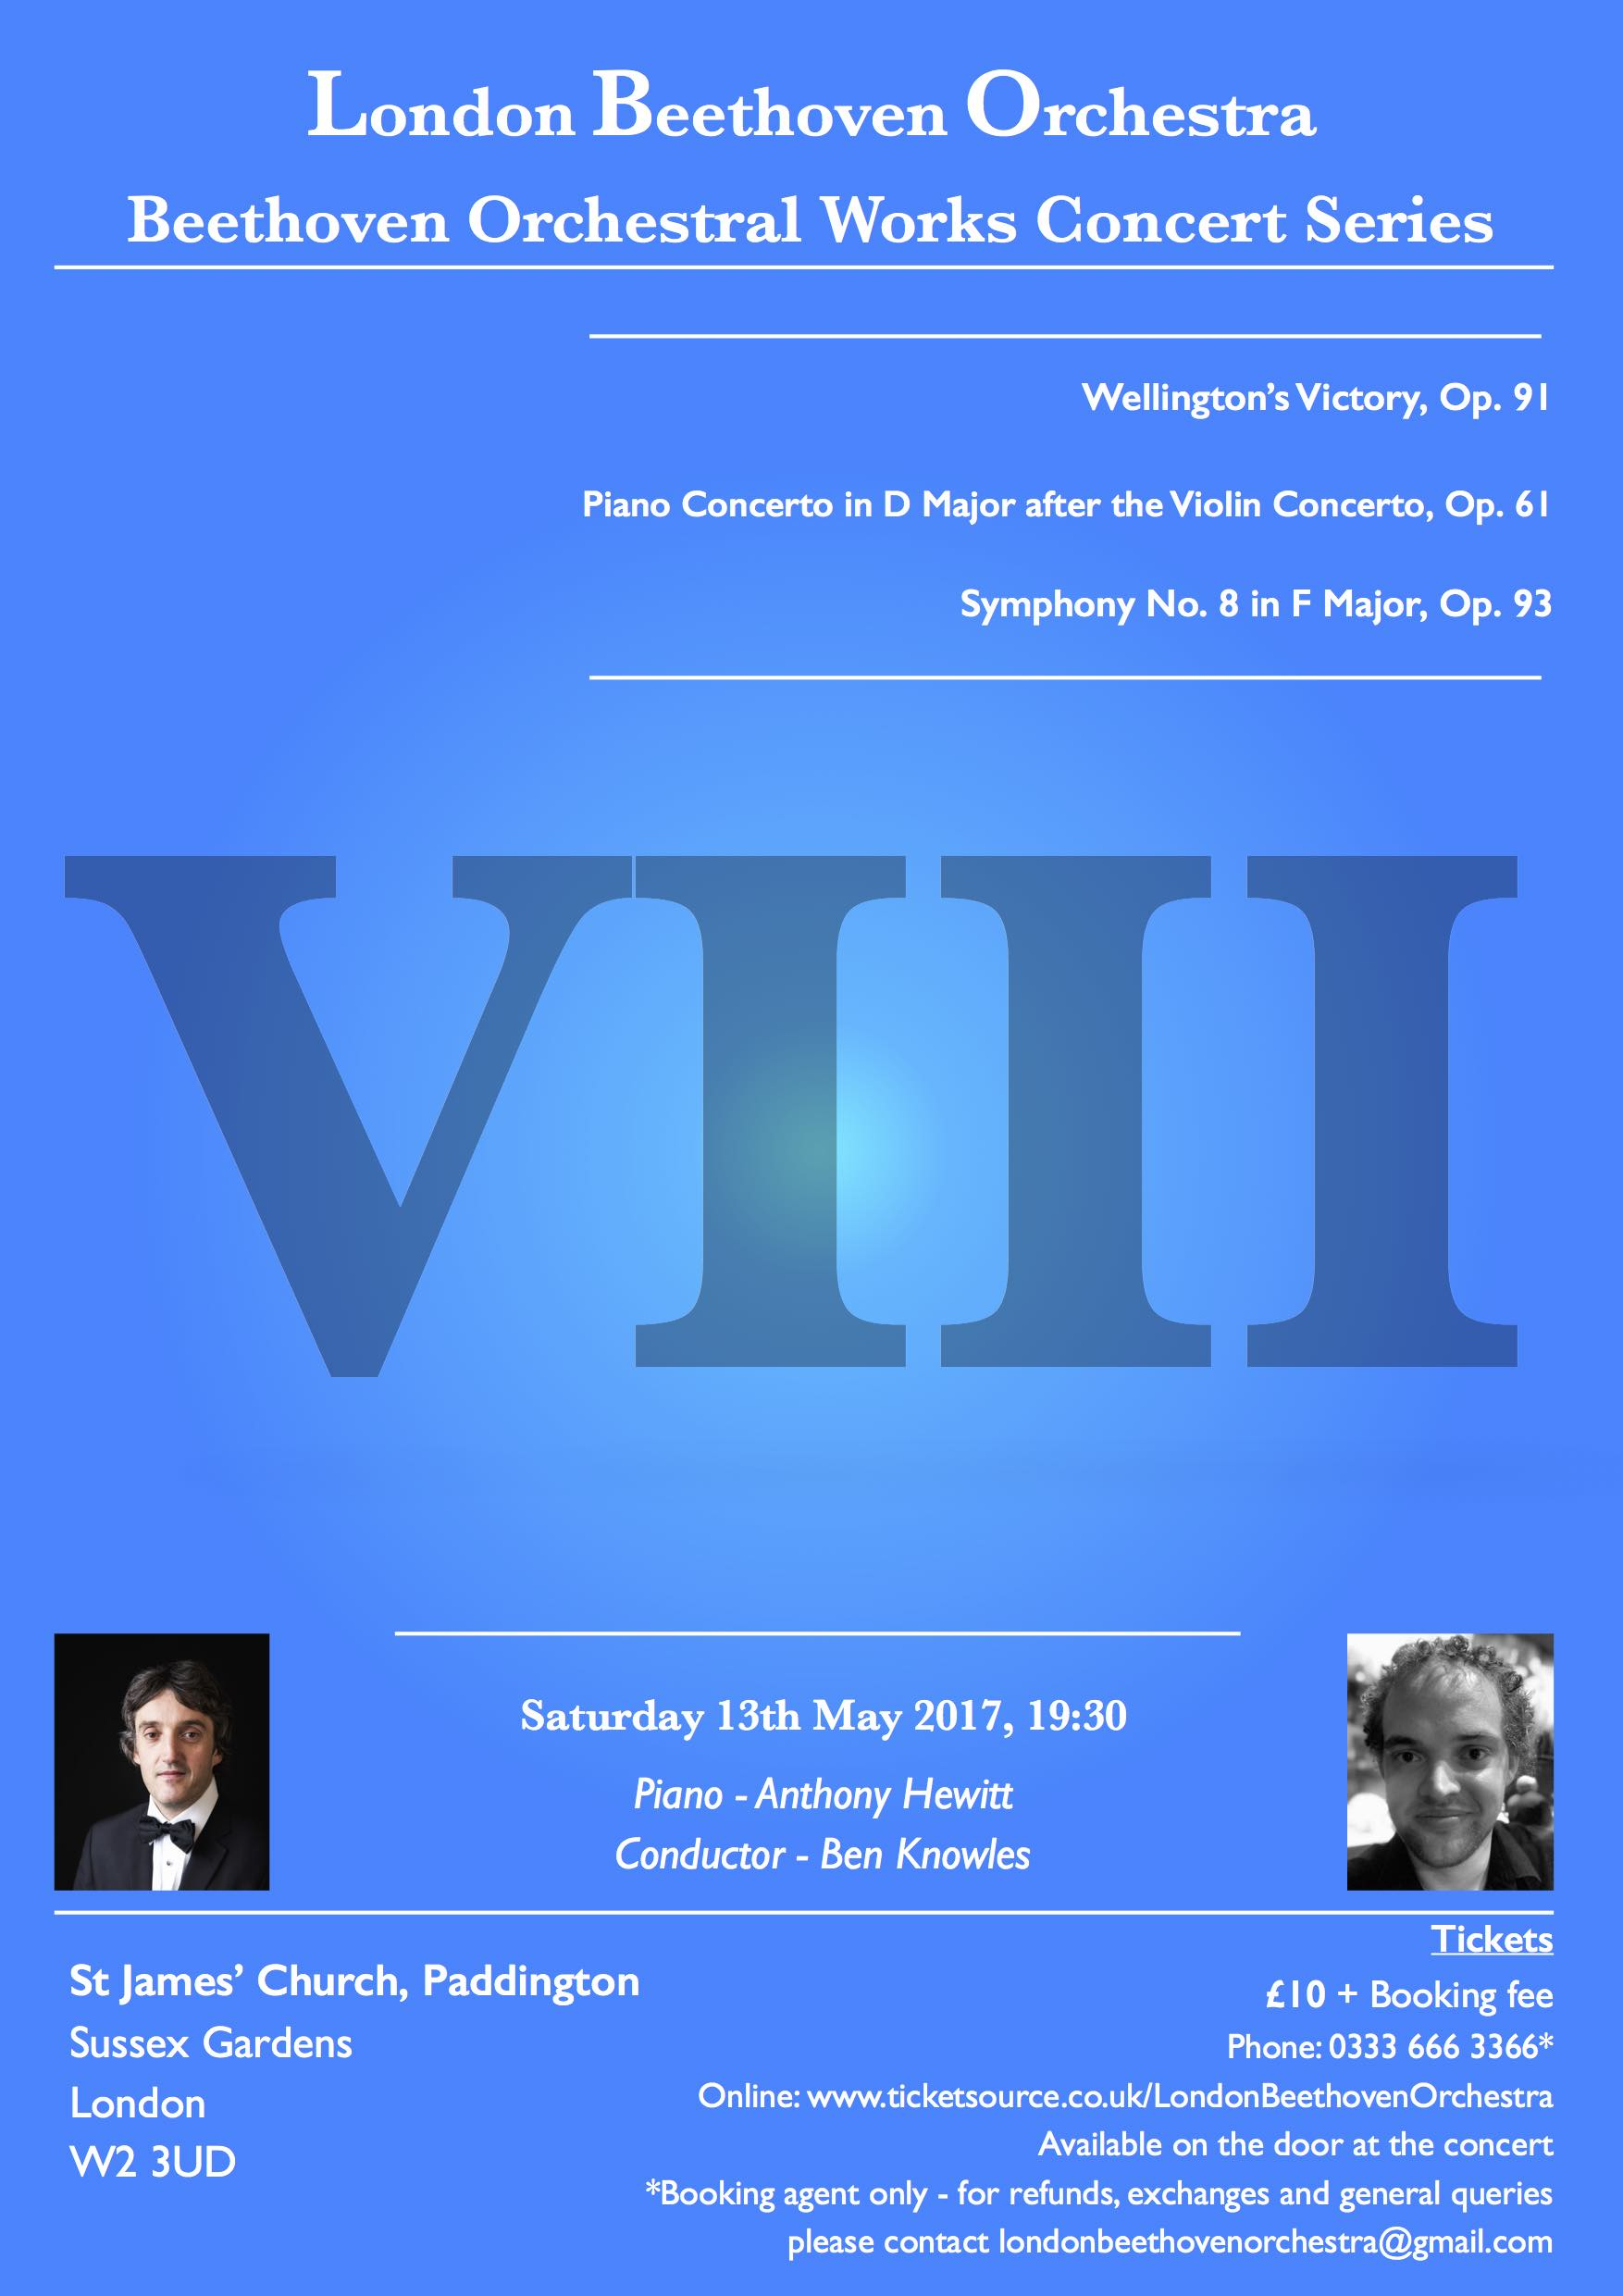 LBO Concert 8 - Wellington's Victory, Piano Concerto after the